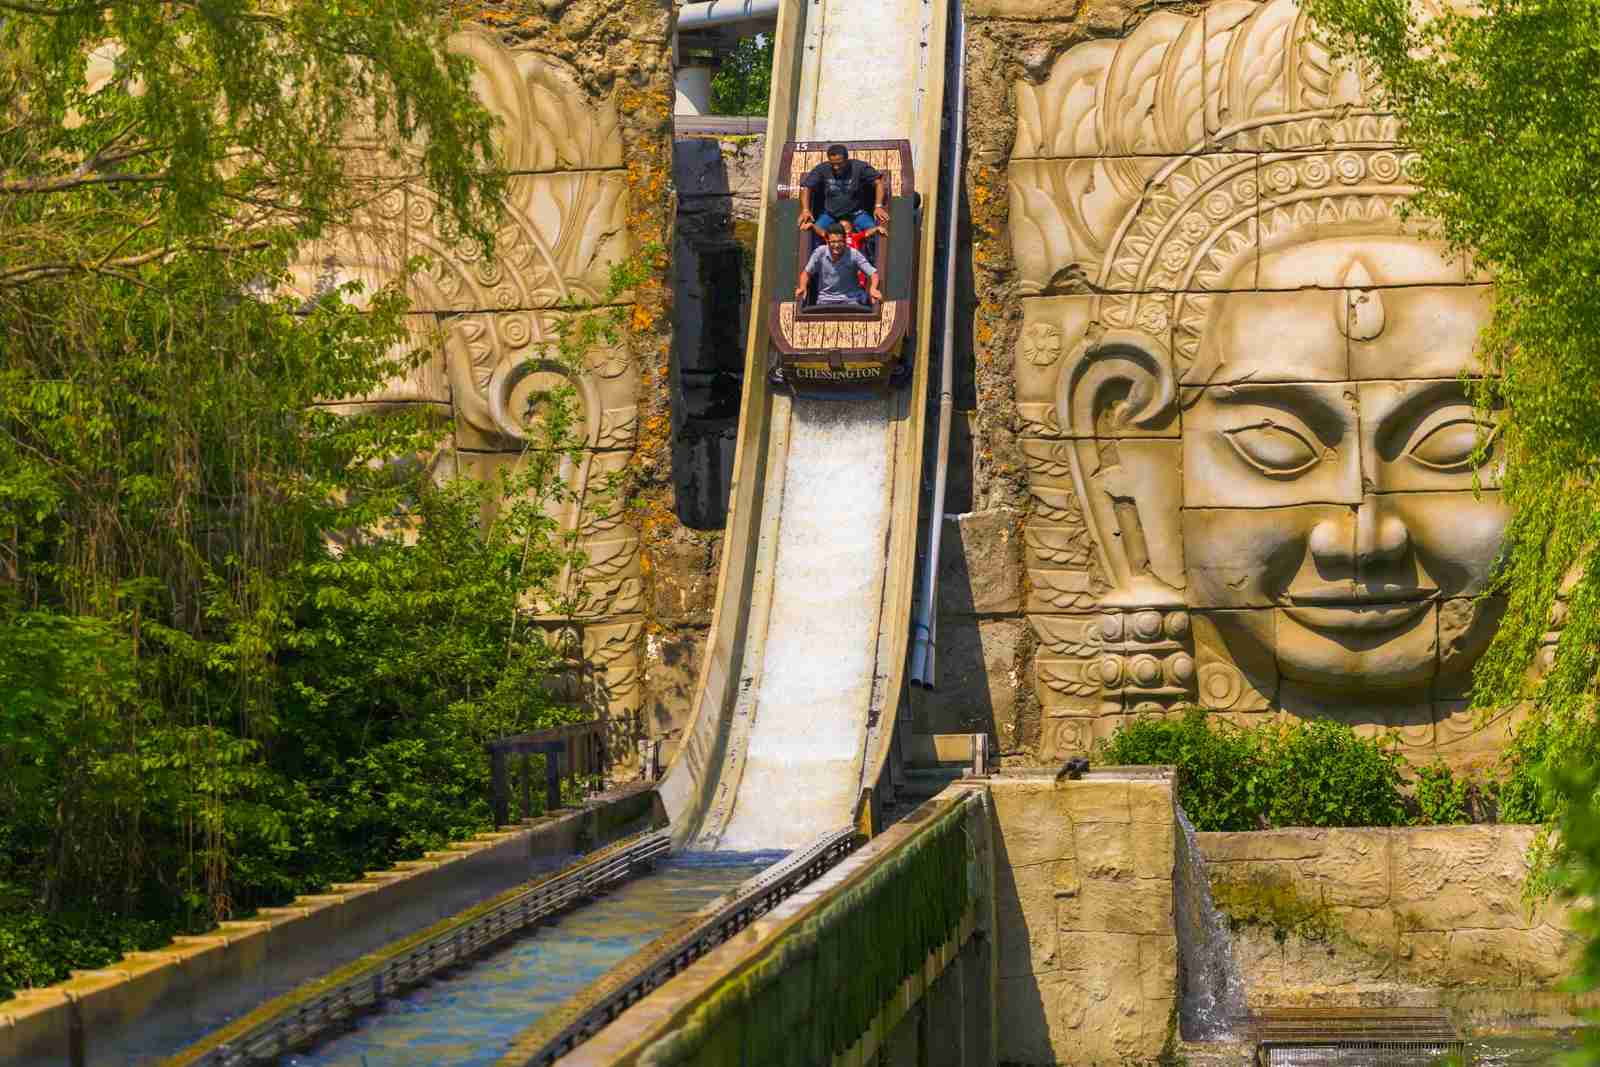 Chessington World of Adventures in Surrey, UK. (Photo by Pawel Libera/Getty Images)